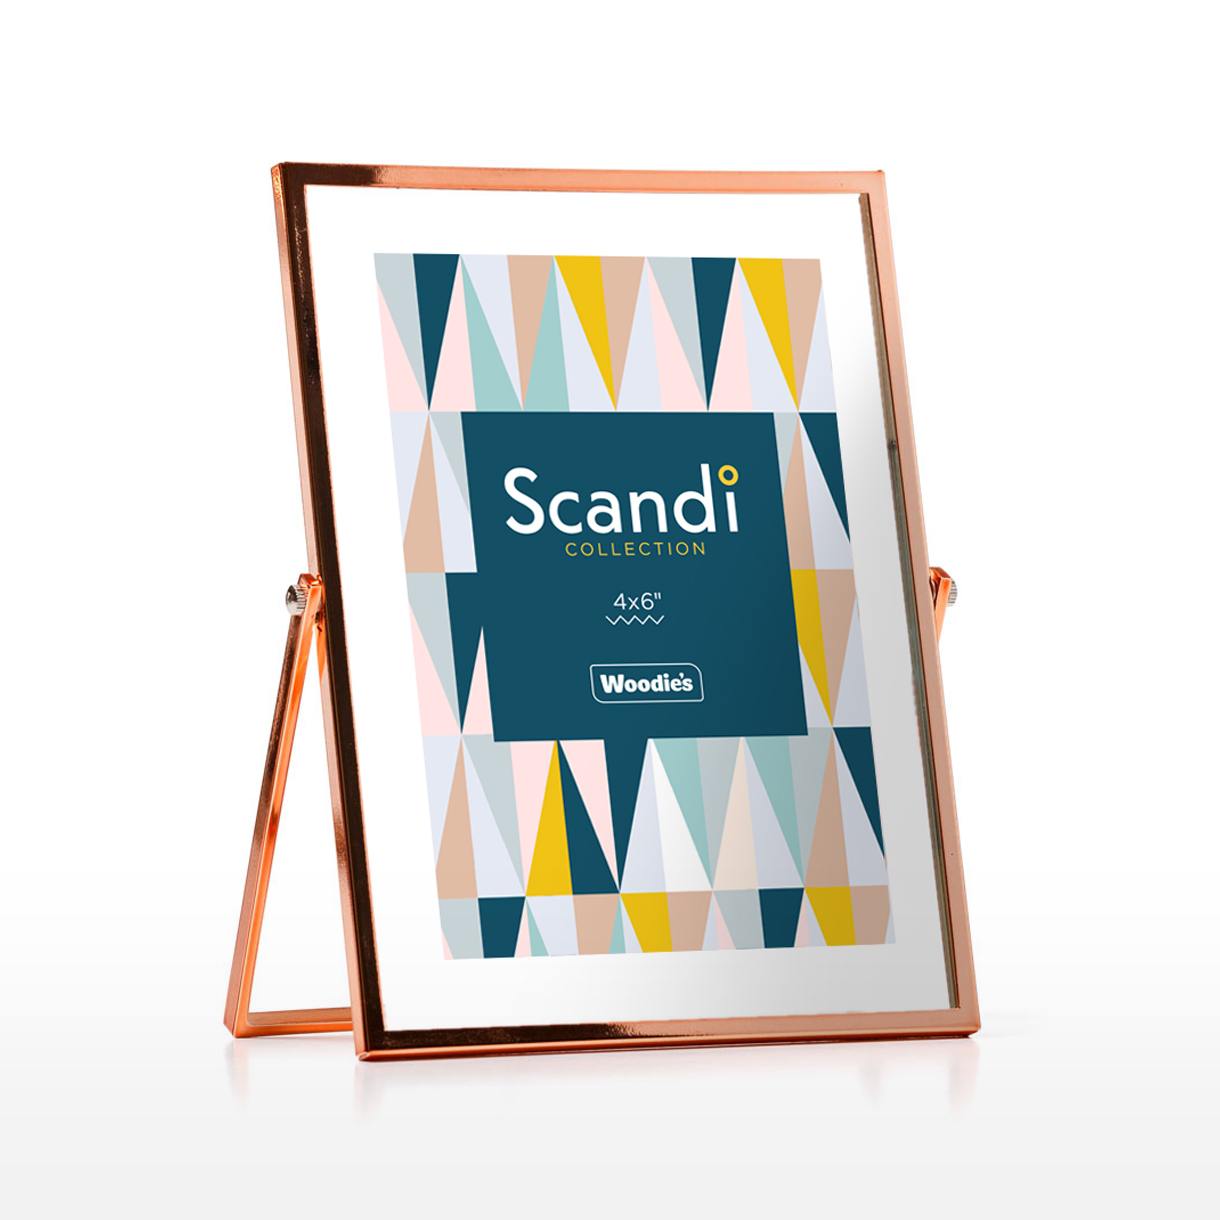 Principle brand agency Dublin Woodie's homewares brand design project scandi collection picture frame